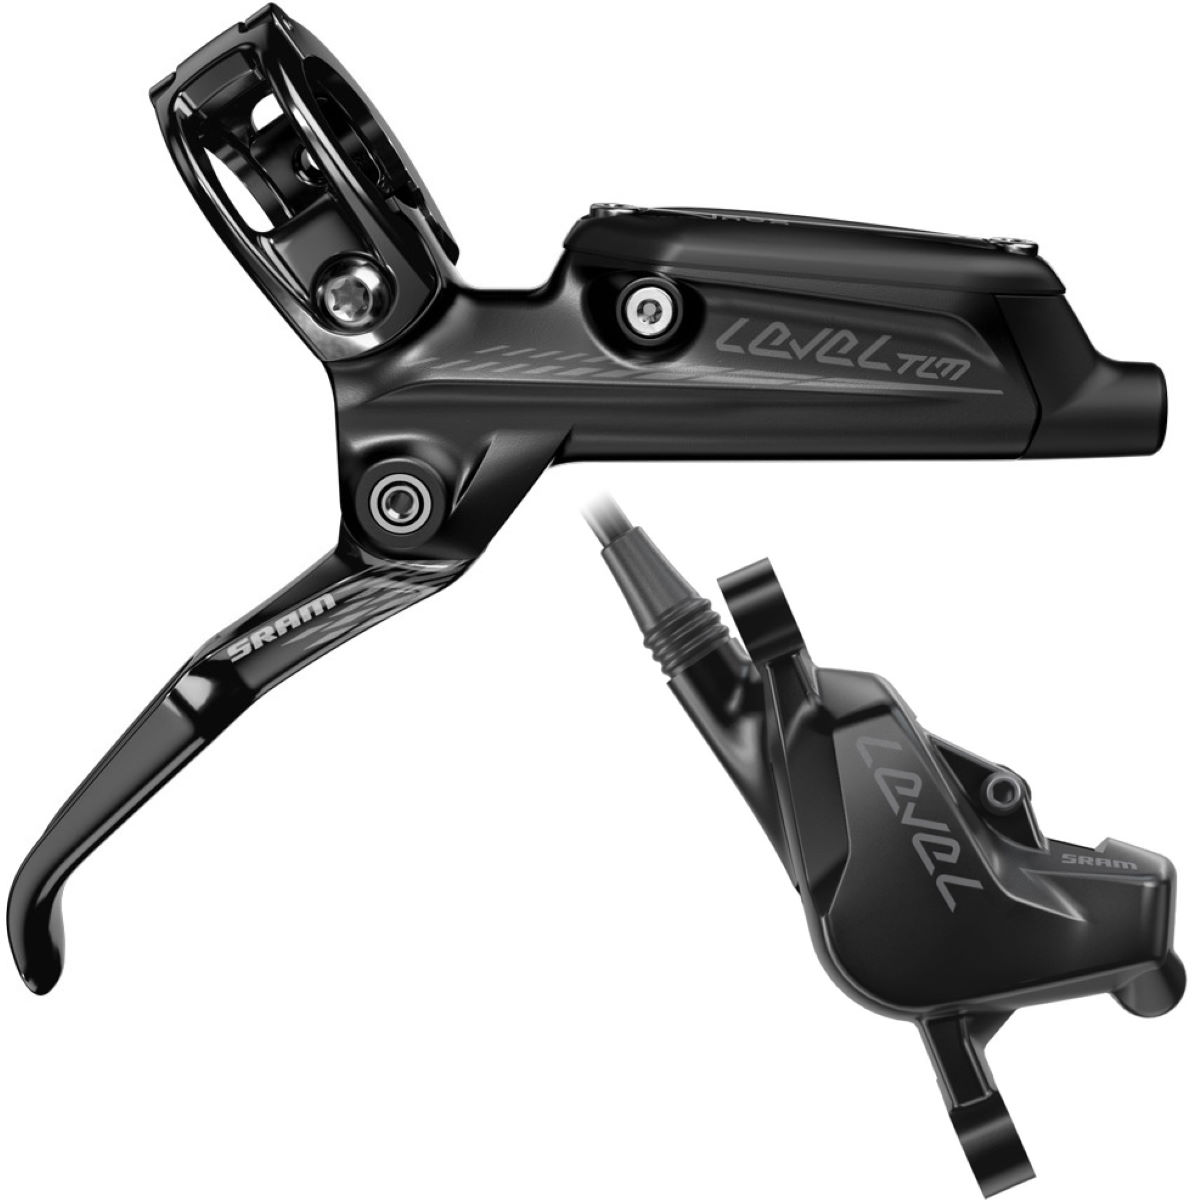 SRAM SRAM Level TLM Disc Brake   Disc Brake Callipers